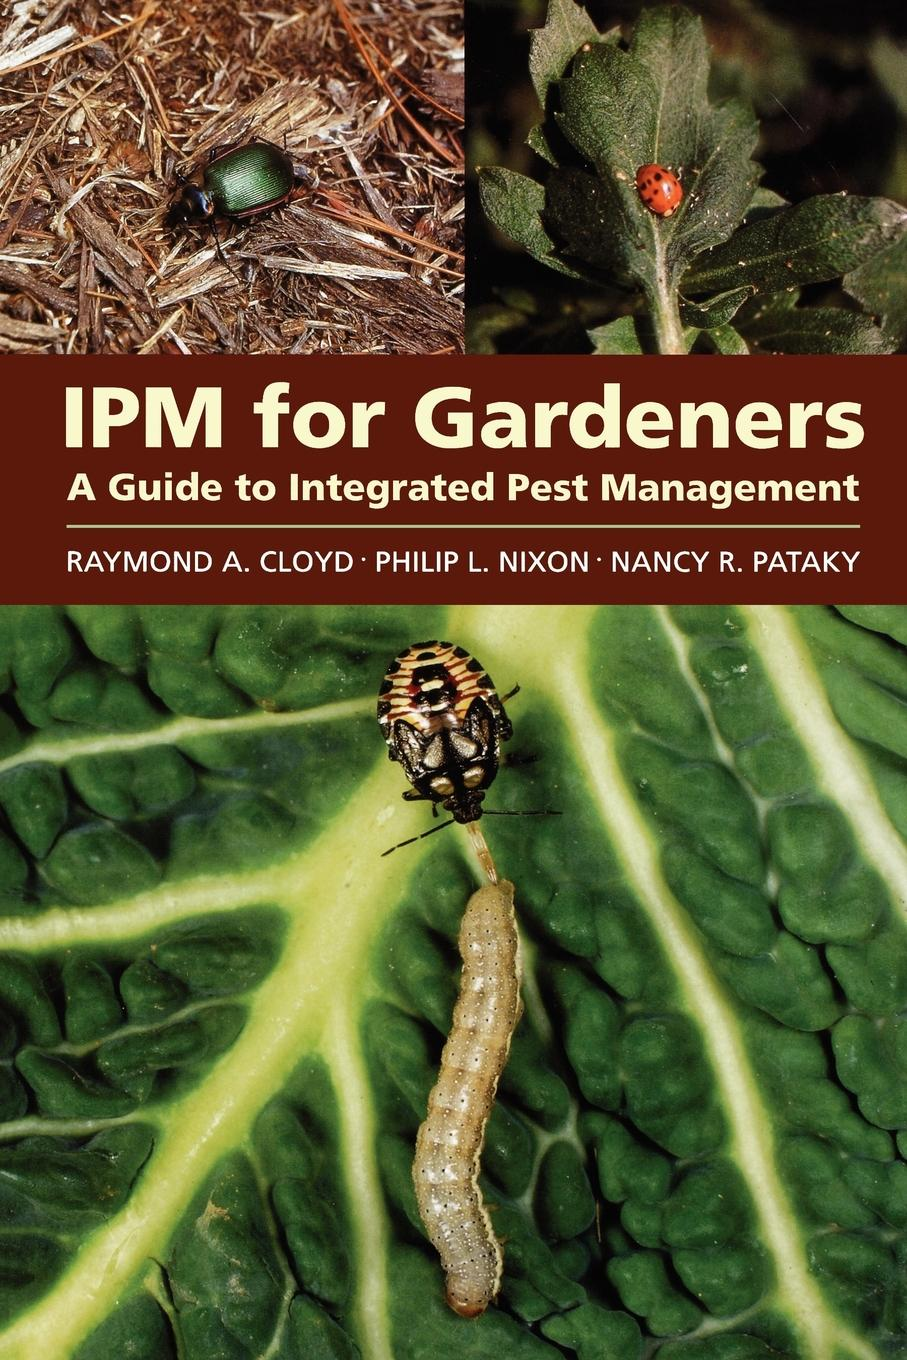 Raymond A. Cloyd, Philip L. Nixon, Nancy R. Pataky Ipm for Gardeners. A Guide to Integrated Pest Management folding basket for car home use red size l